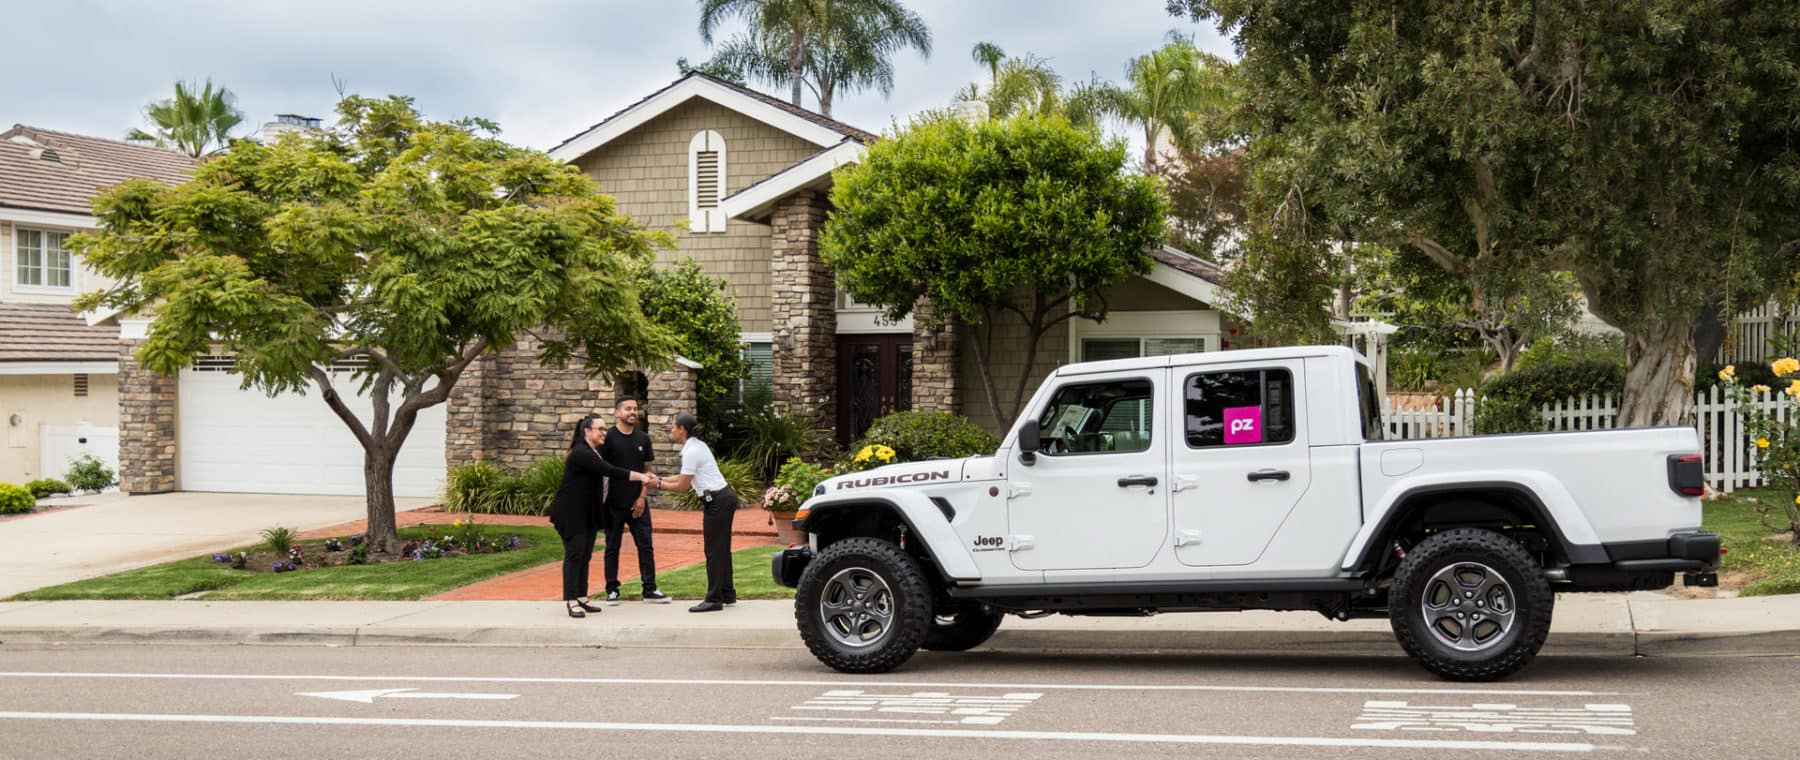 Jeep Dealership San Diego >> Jack Powell Chrysler Dodge Jeep Ram Cdjr Dealer In